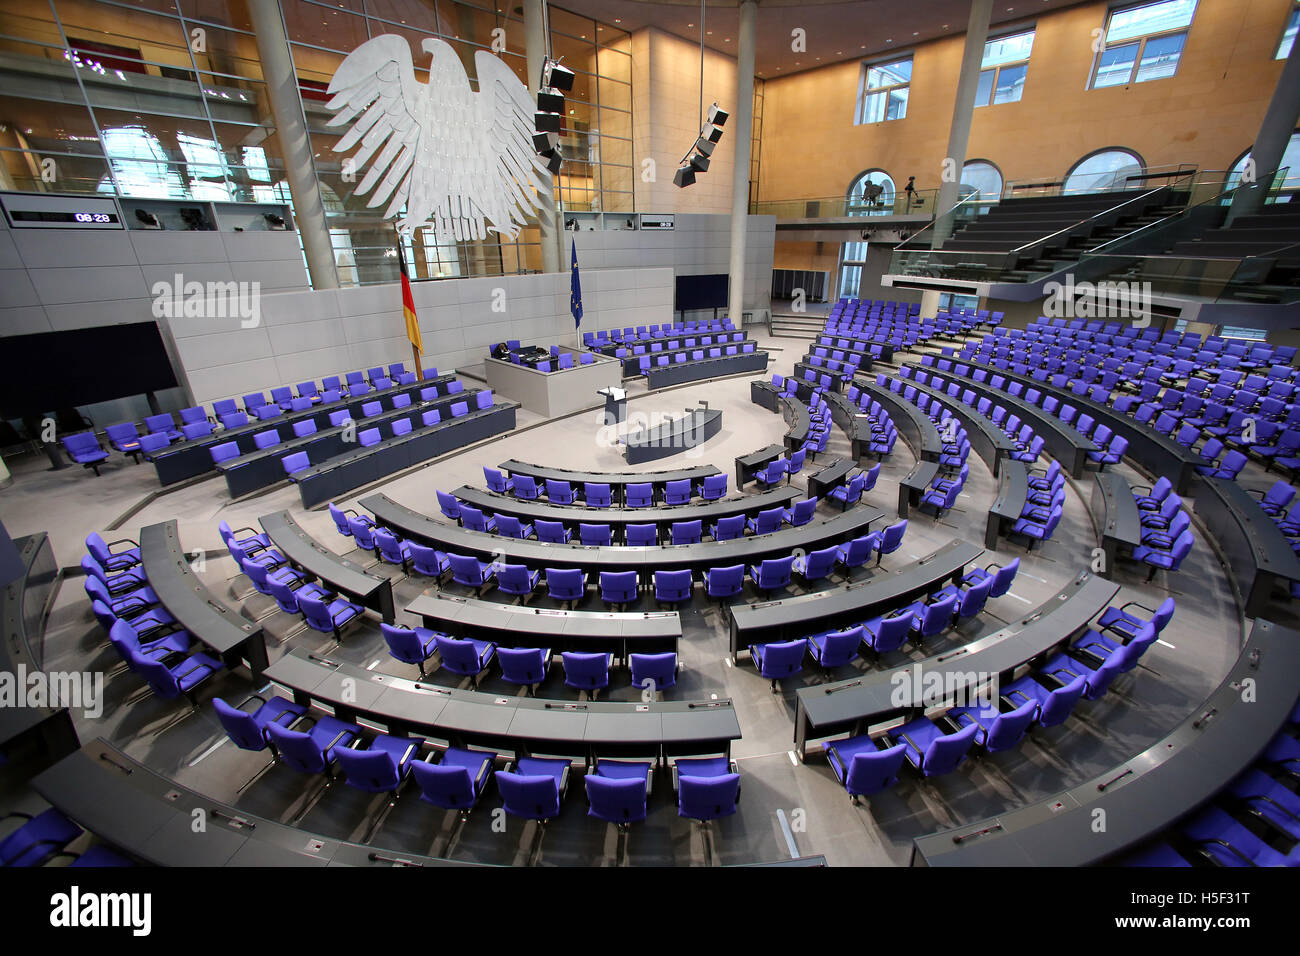 Berlin, Germany. 20th Oct, 2016. The plenary hall of the German Bundestag parliament prior to its 196th session Stock Photo